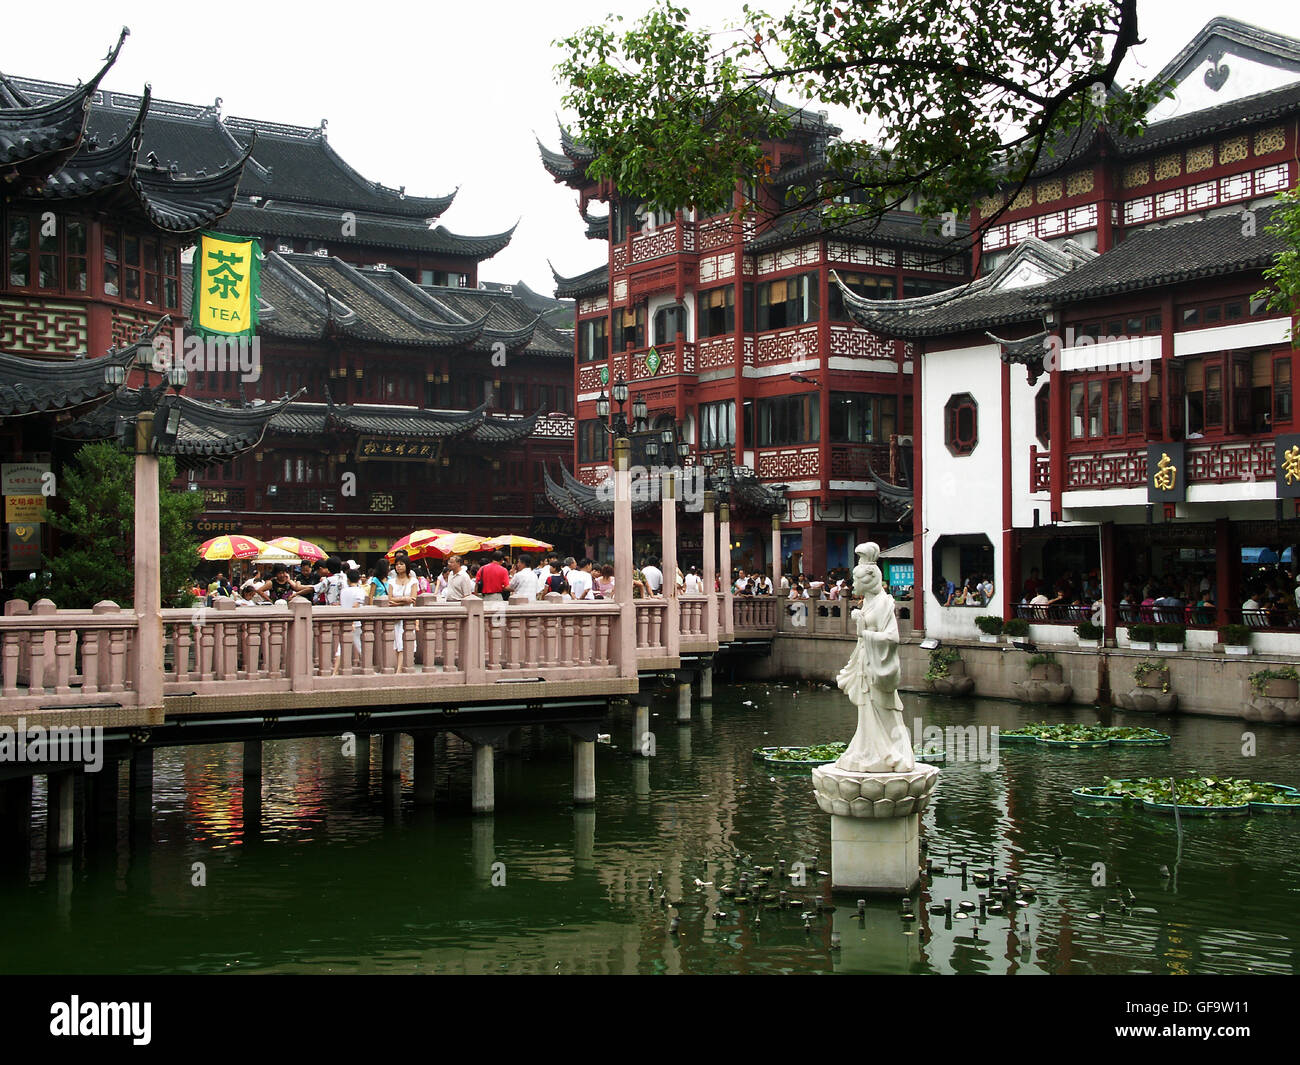 The Bridge of Nine Turnings and Húxin Tíng teahouse in Nánshì, the oldest district of Shanghai, - Stock Image